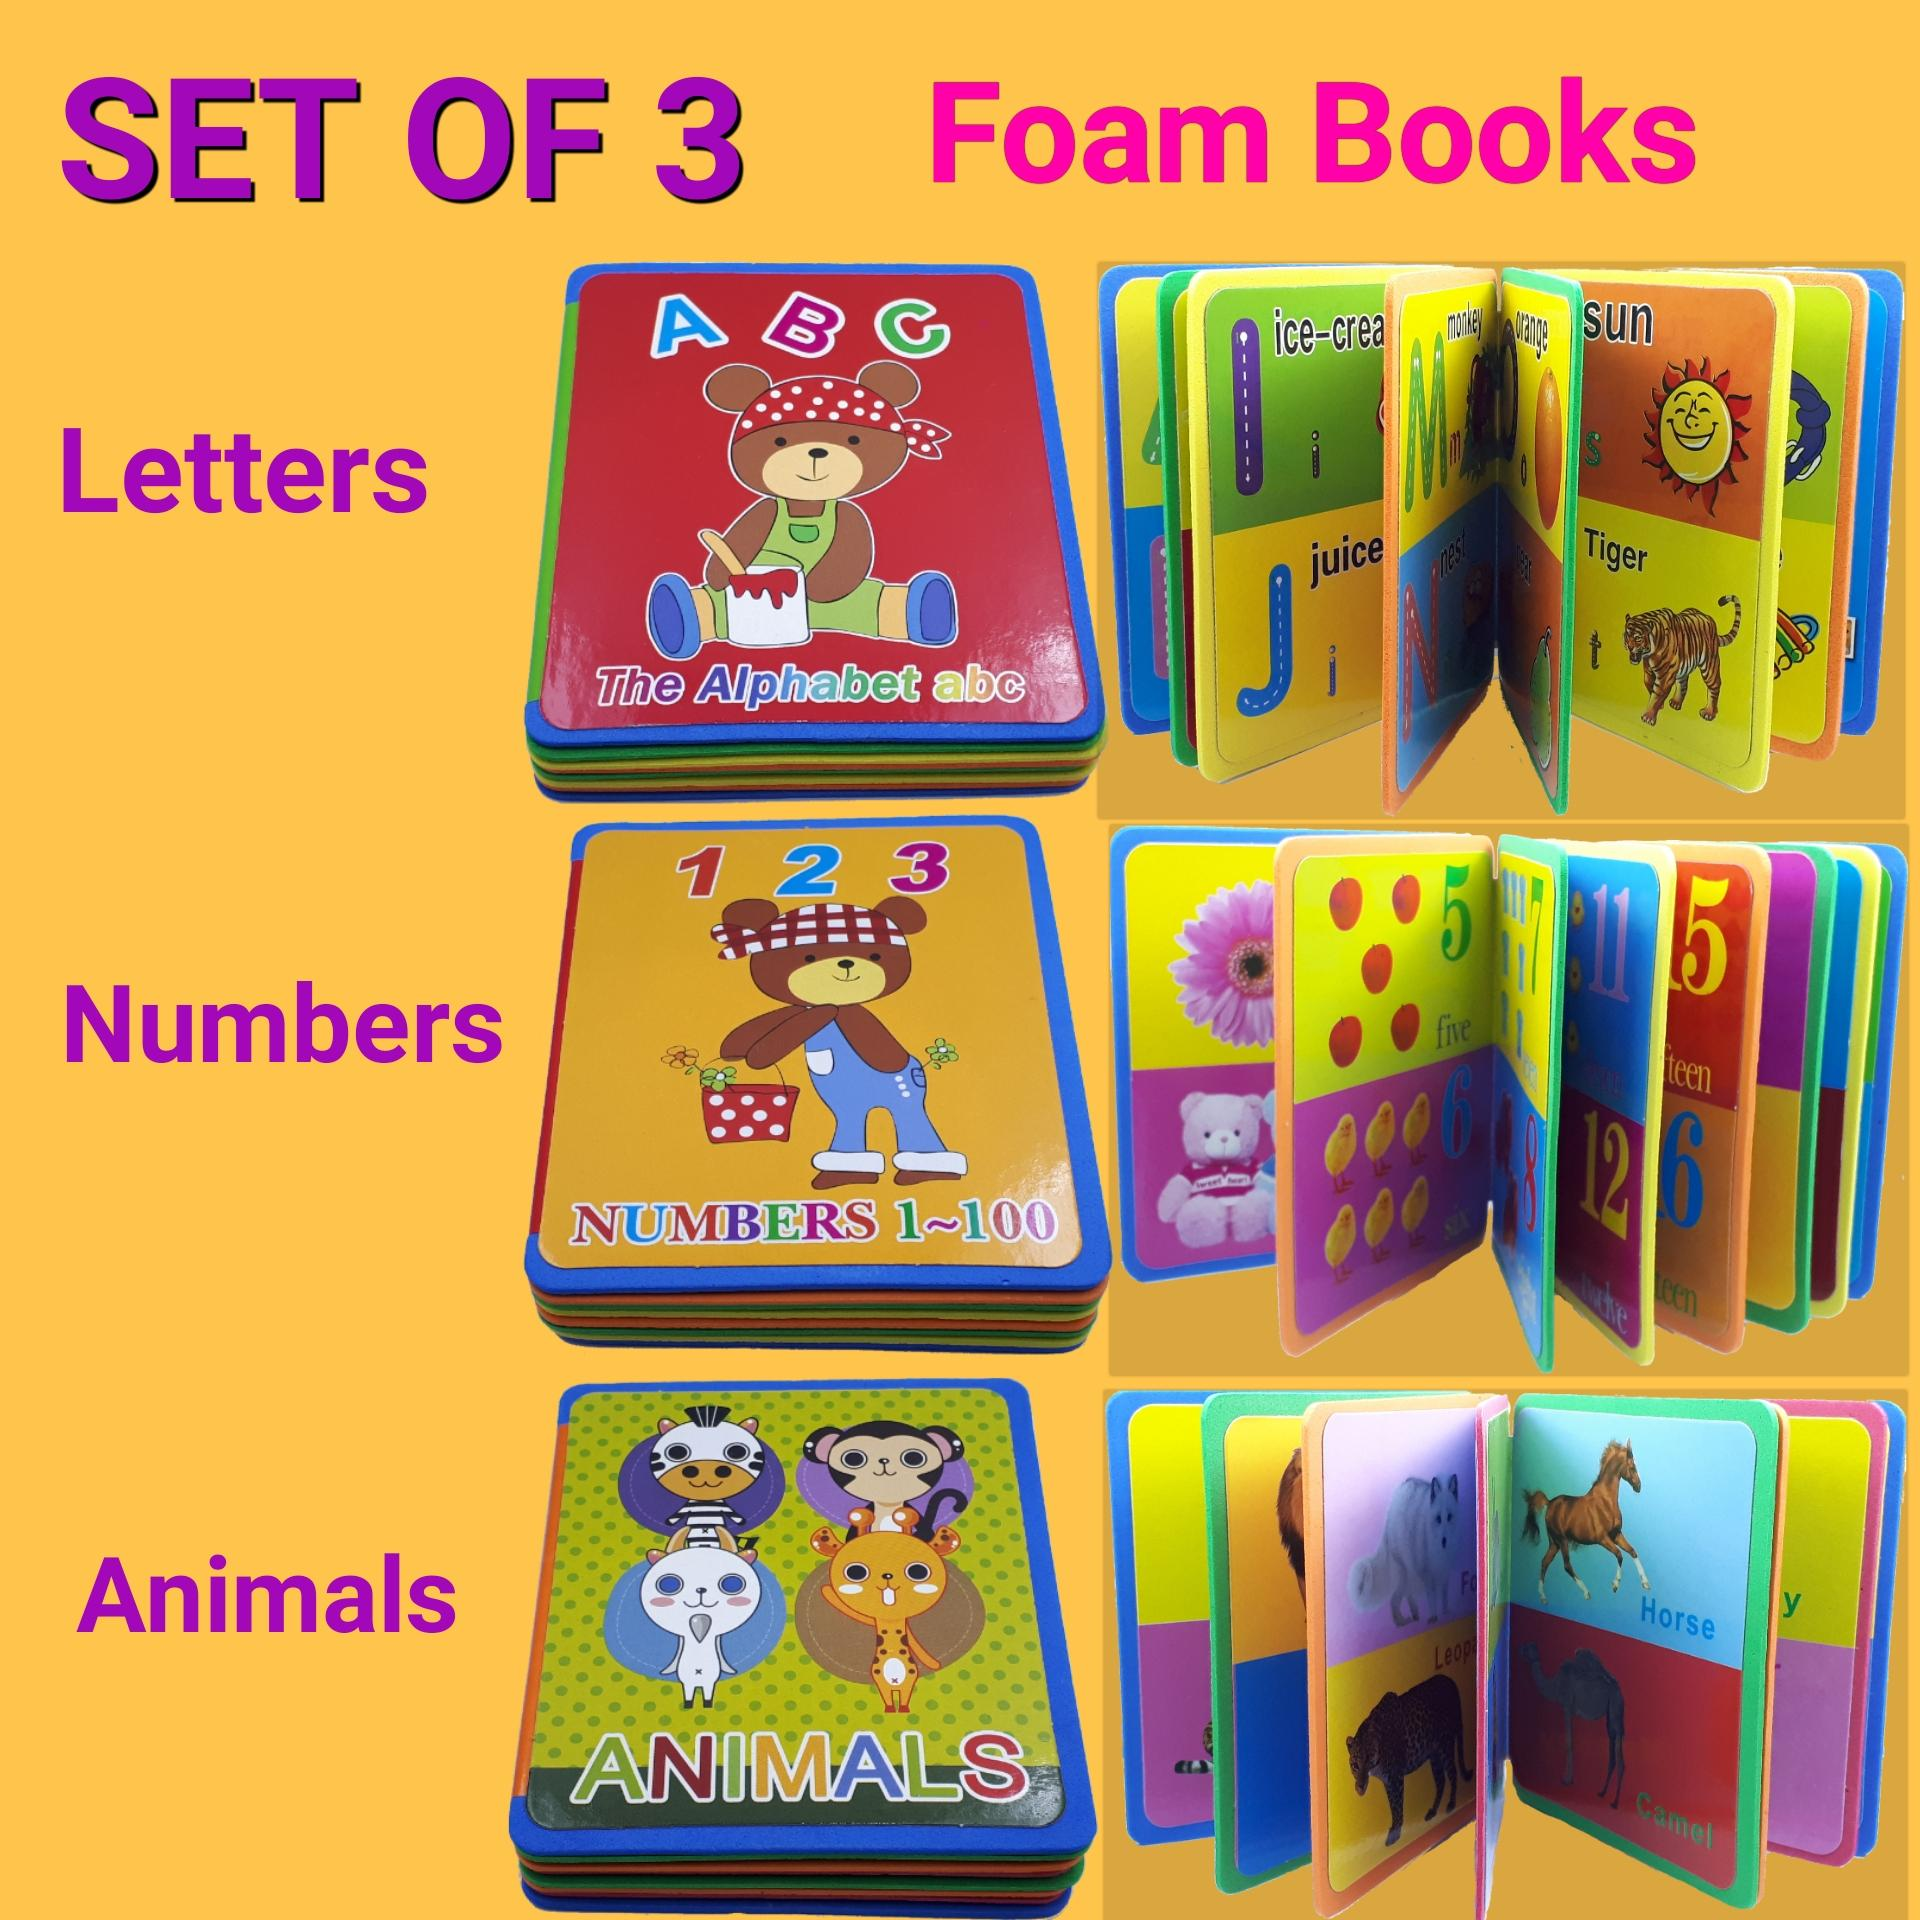 302bf4150a99 Educational Toys. 130851 items found in Learning   Education. Foam Book For  Kids